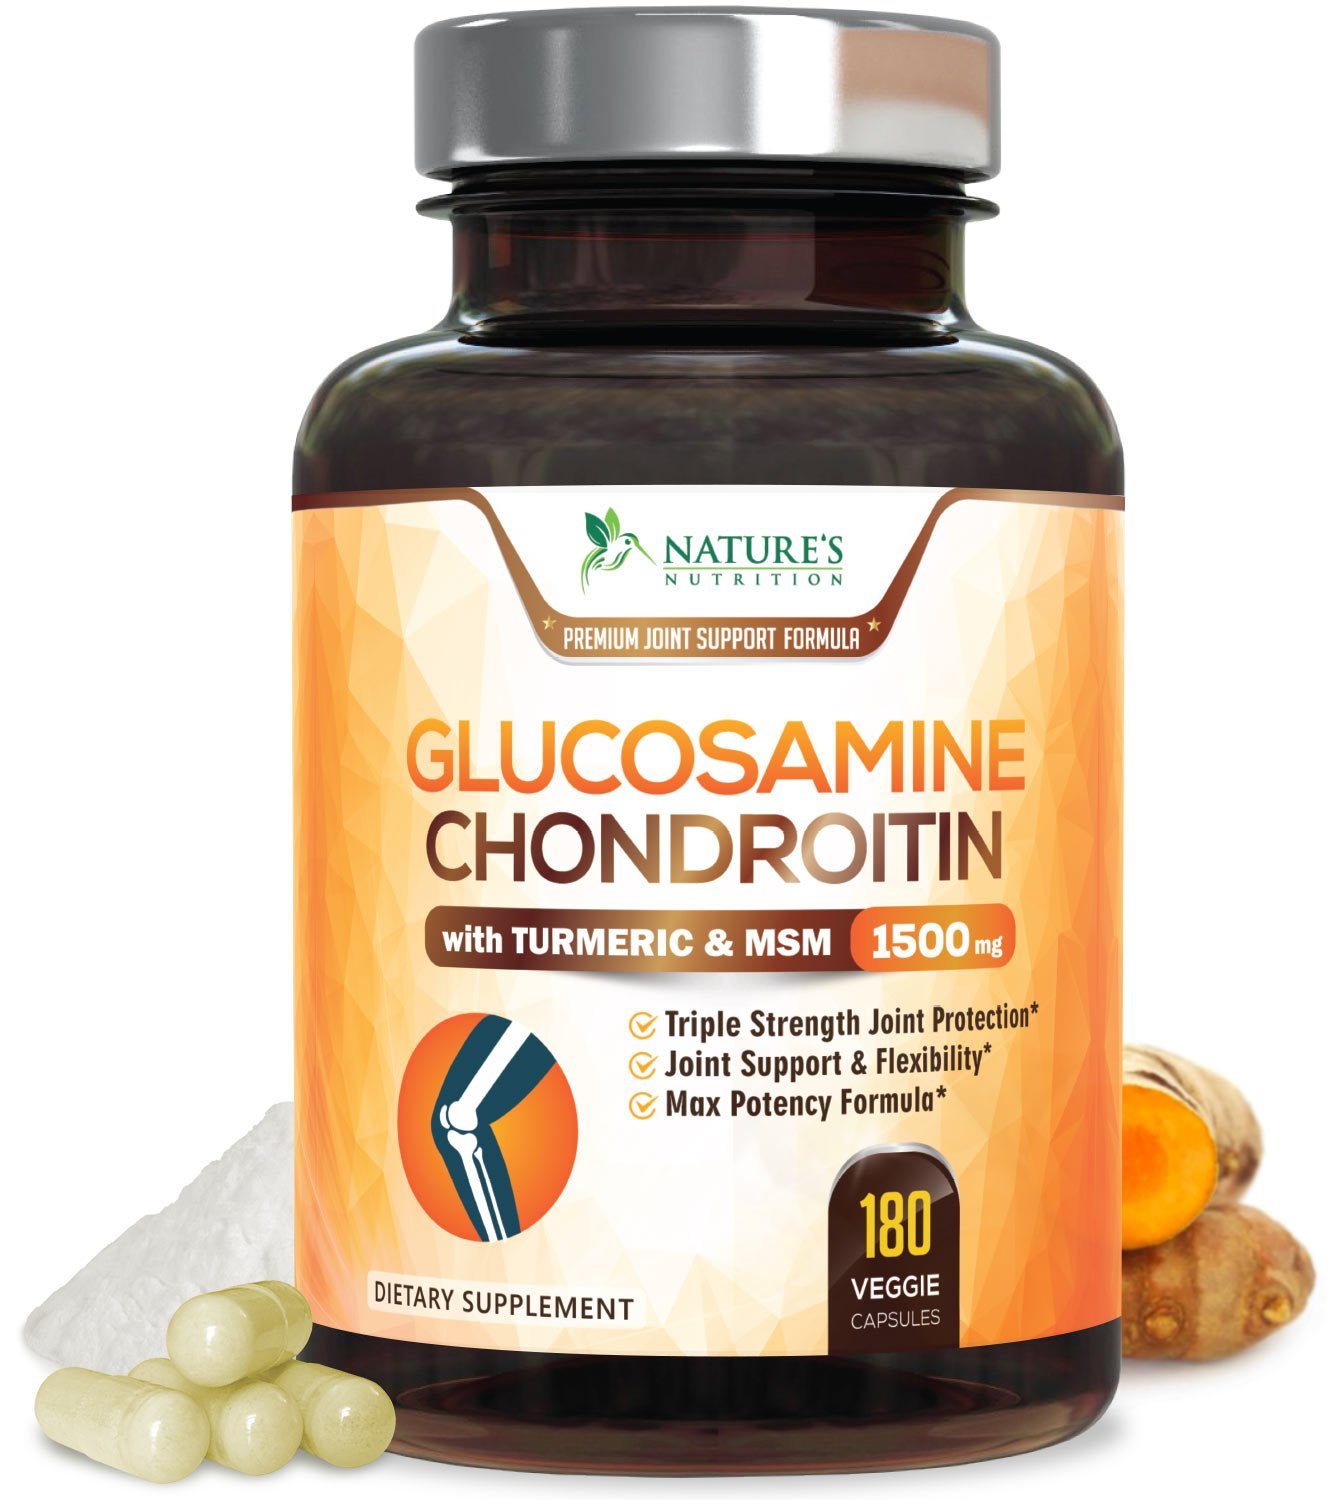 Glucosamine Chondroitin Turmeric MSM. Max Potency 1500mg - Glucosamine Sulfate Complex Supplement for Joint Pain Relief & Support - Anti-Inflammatory Pills for Back, Knees, Hip & Hands - 180 Capsules